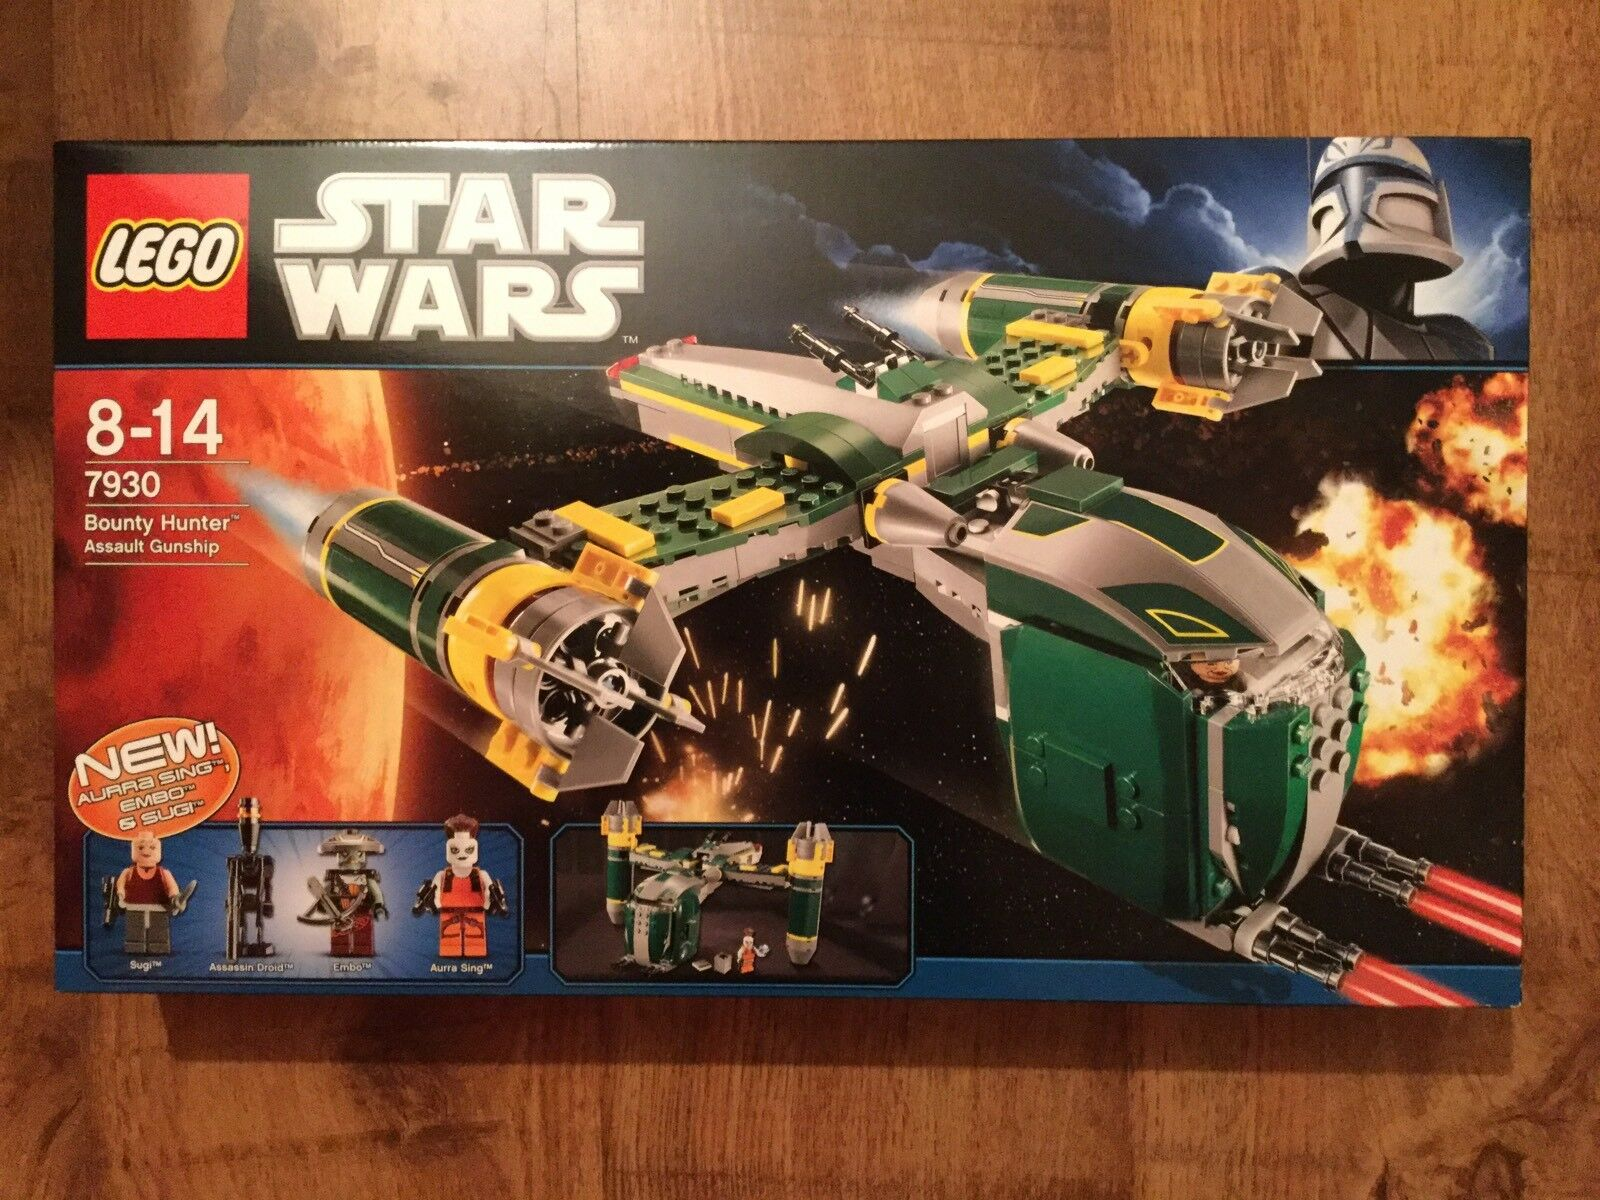 Lego 7930 Star Wars Bounty Hunter Assault Gunship OVP MISB